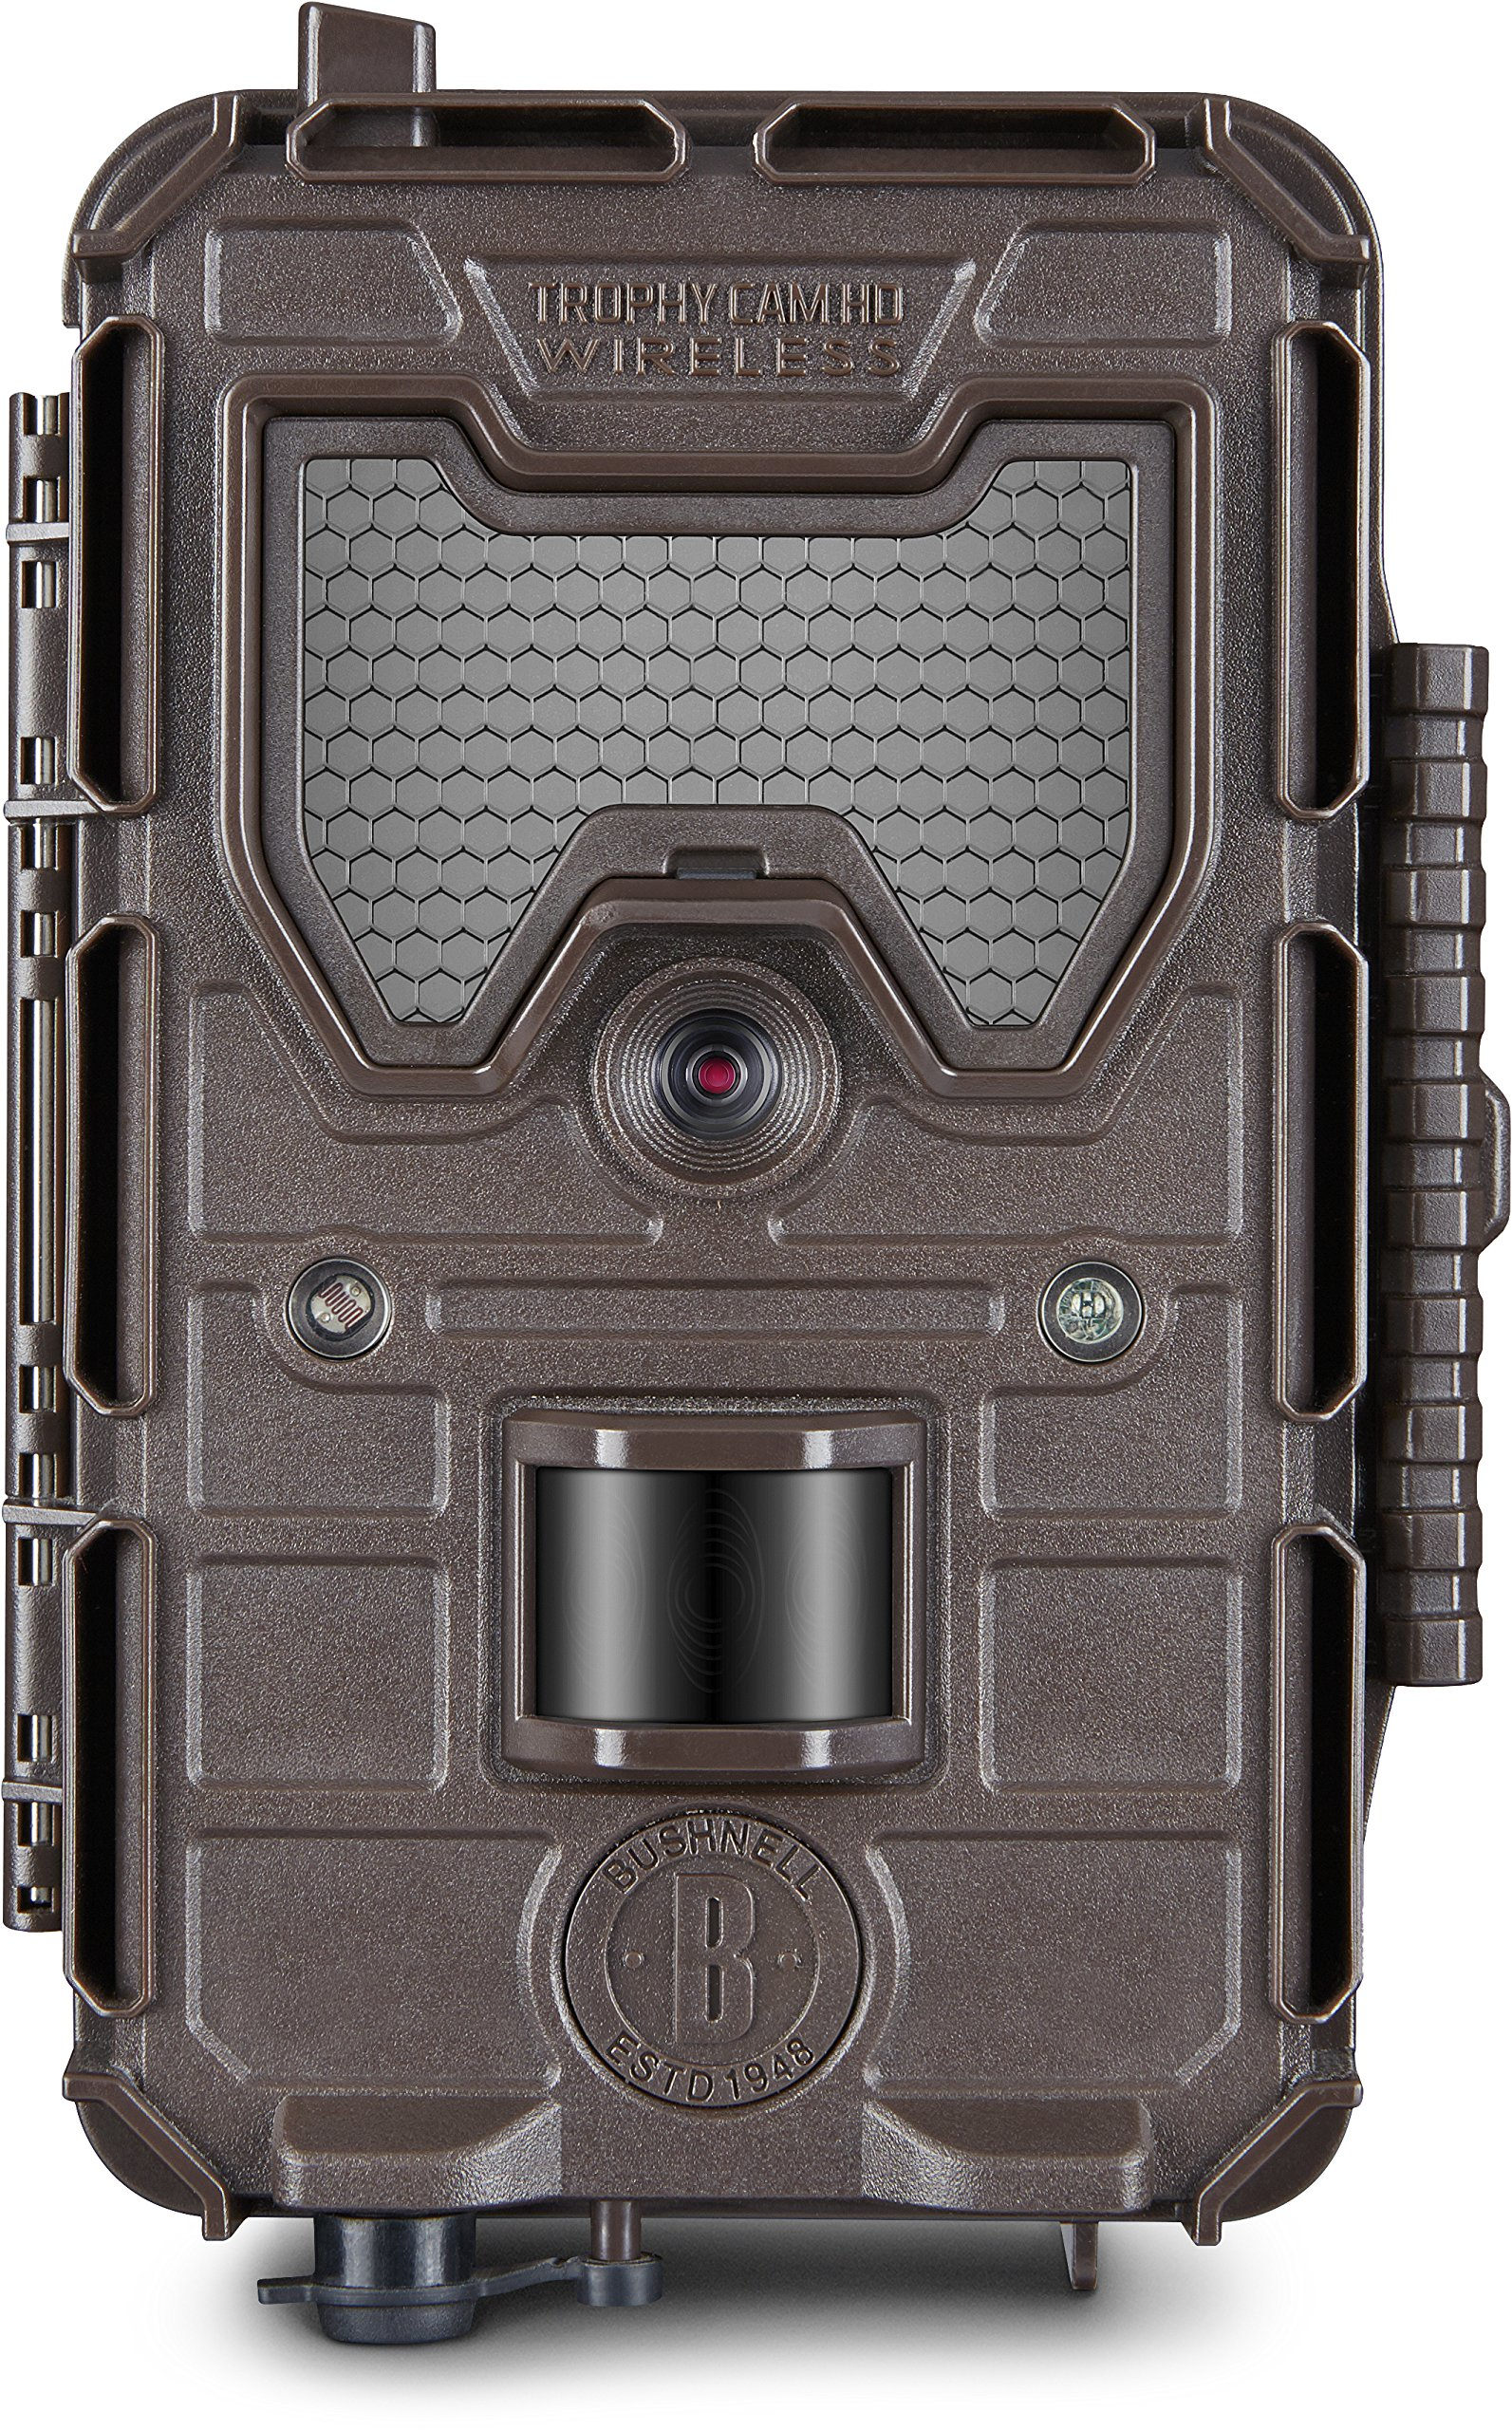 Bushnell 119599C2 Trophy Cam HD Aggressor 14MP Wireless Trail Camera by Bushnell (Image #1)